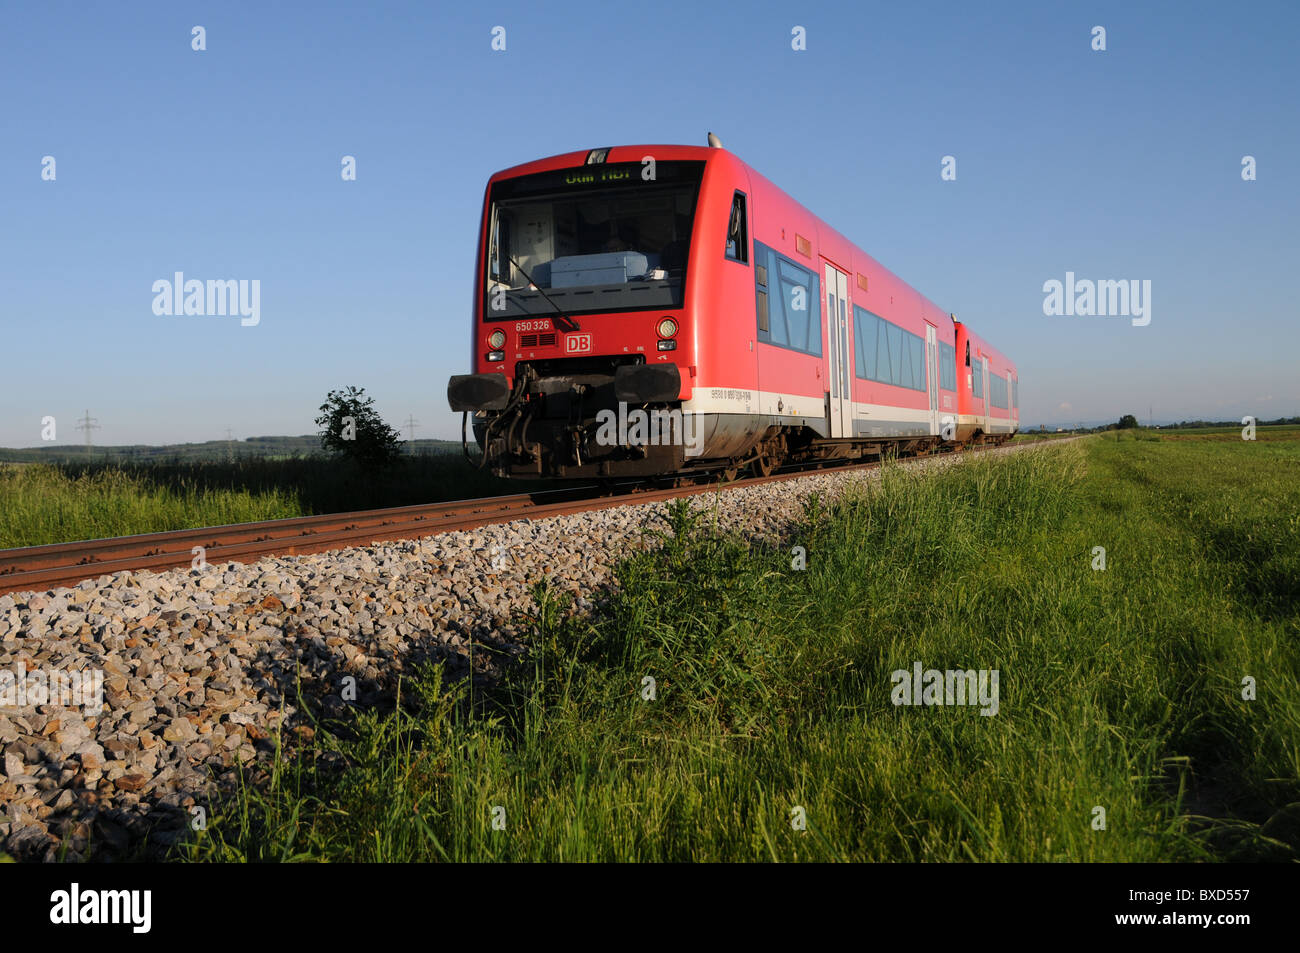 Railcar of the DB - Stock Image